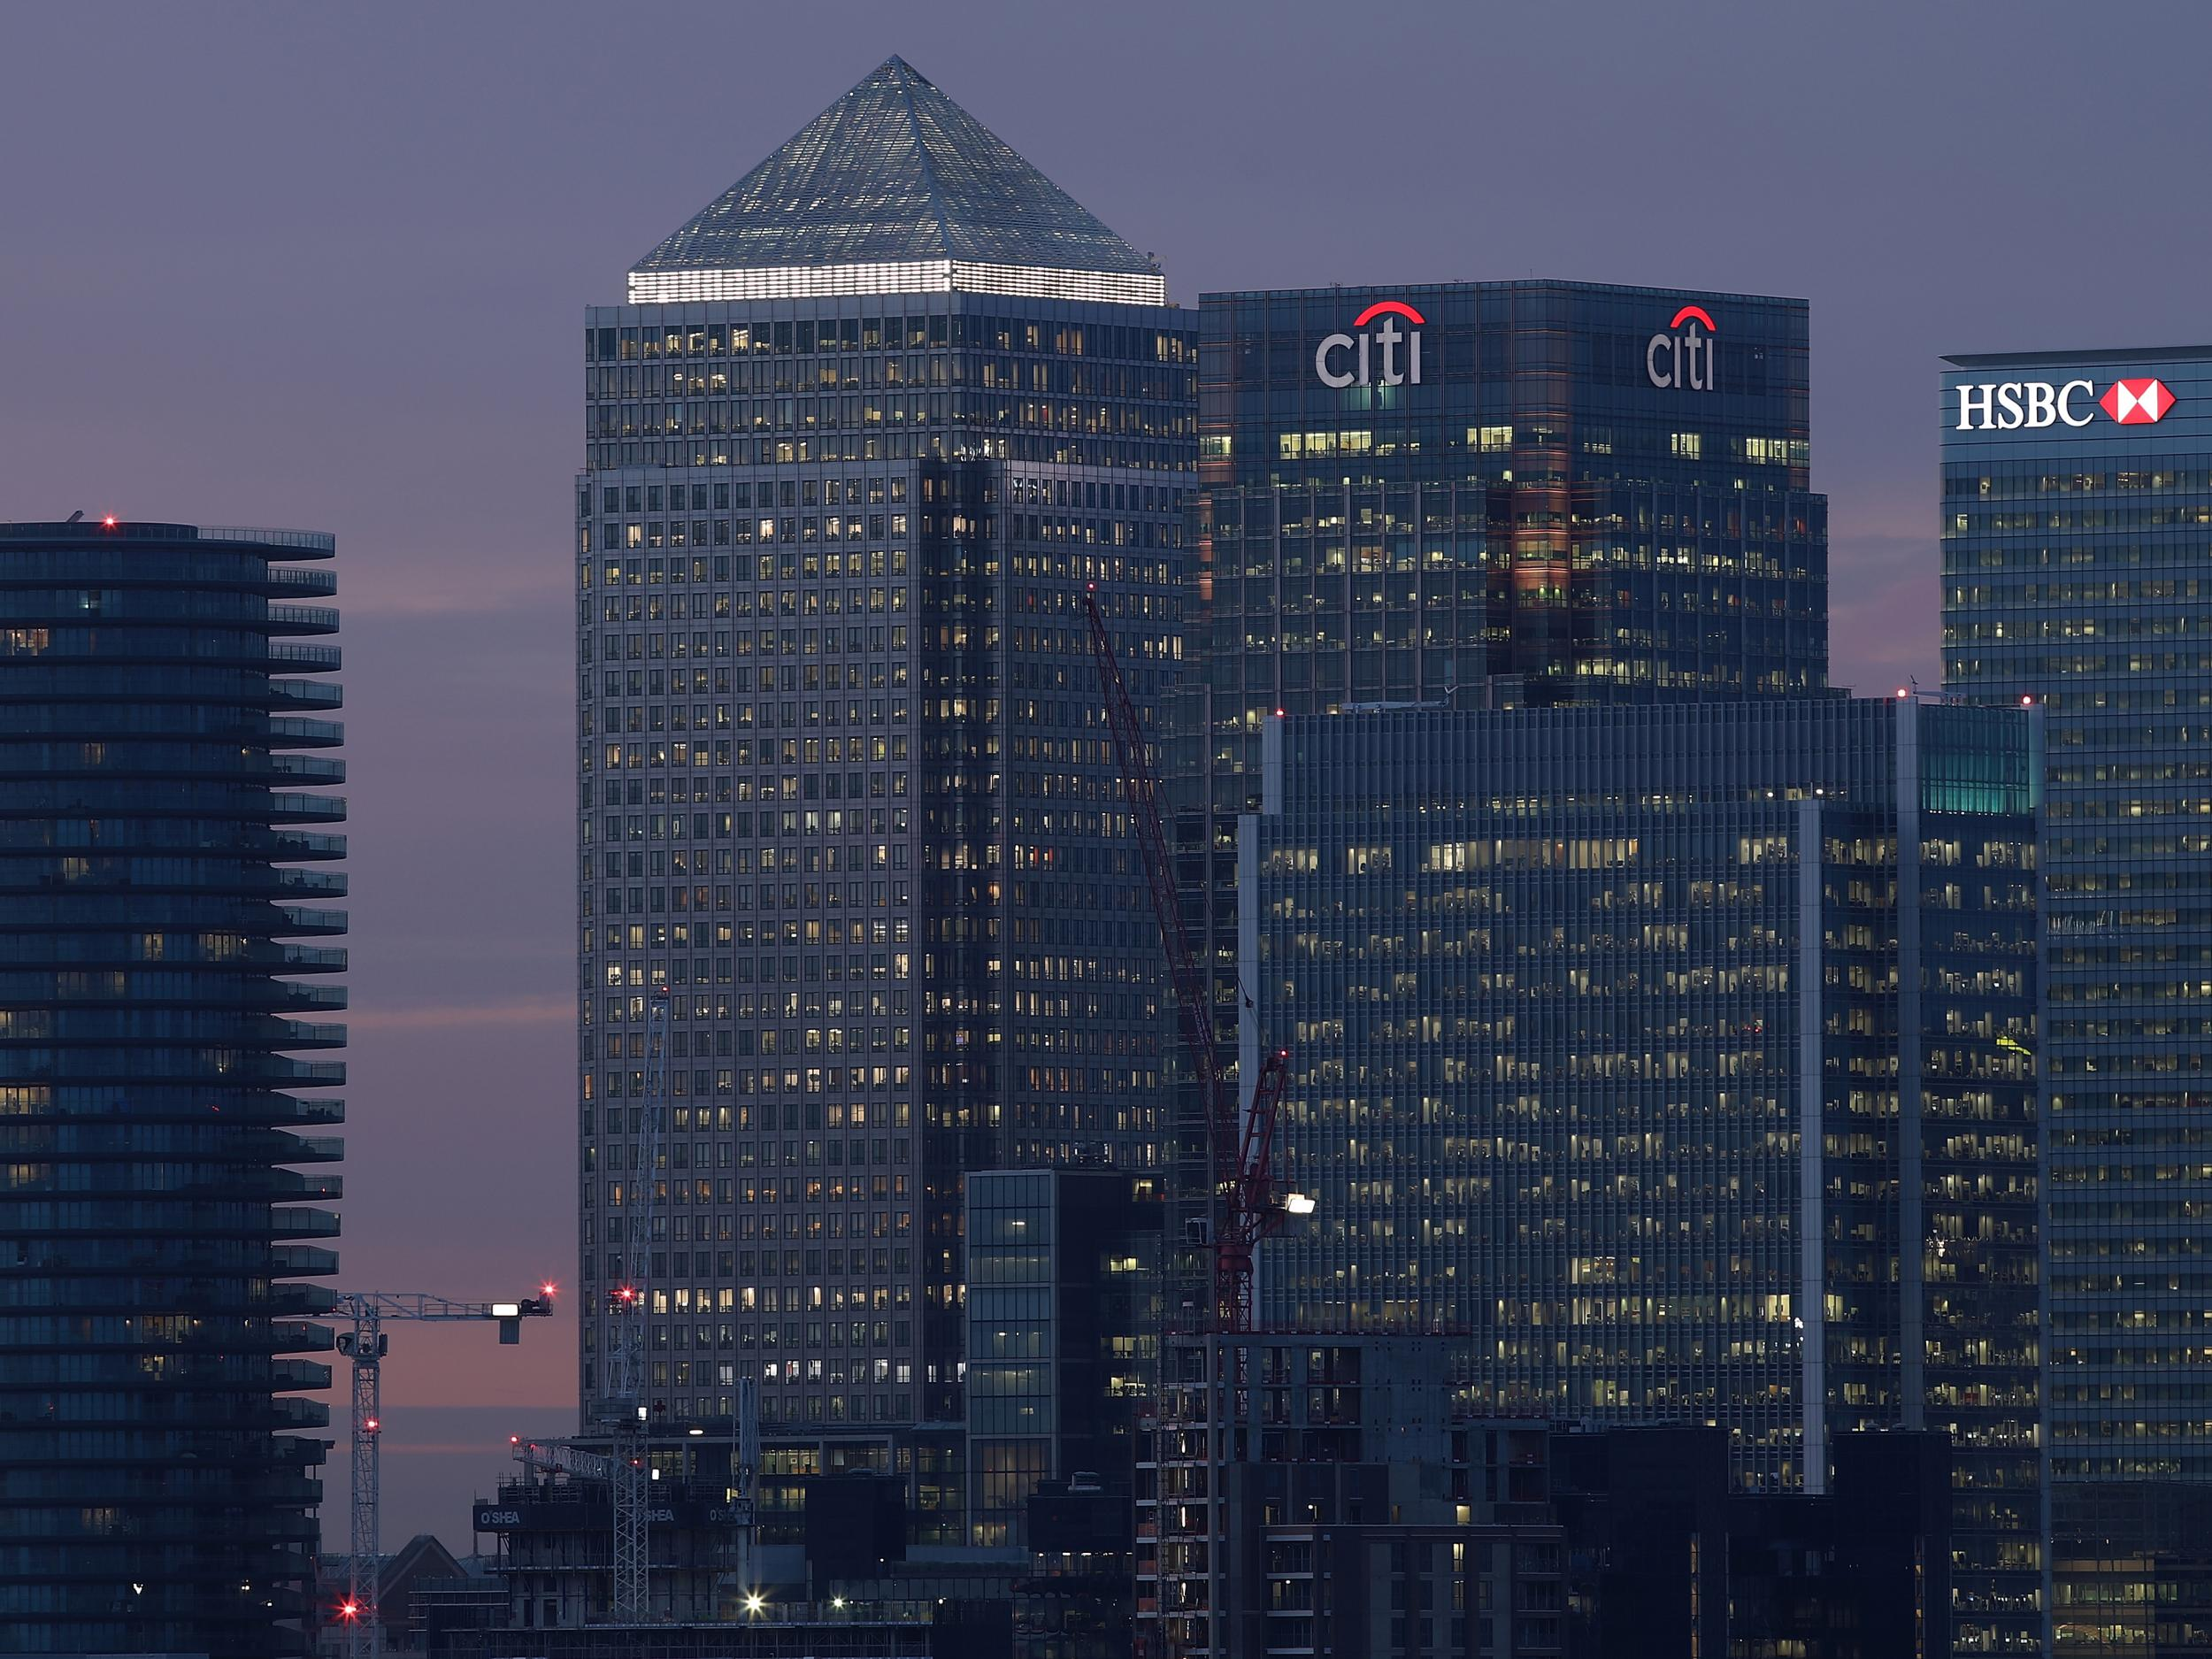 UK banks running out of time to apply for EU license, says ECB